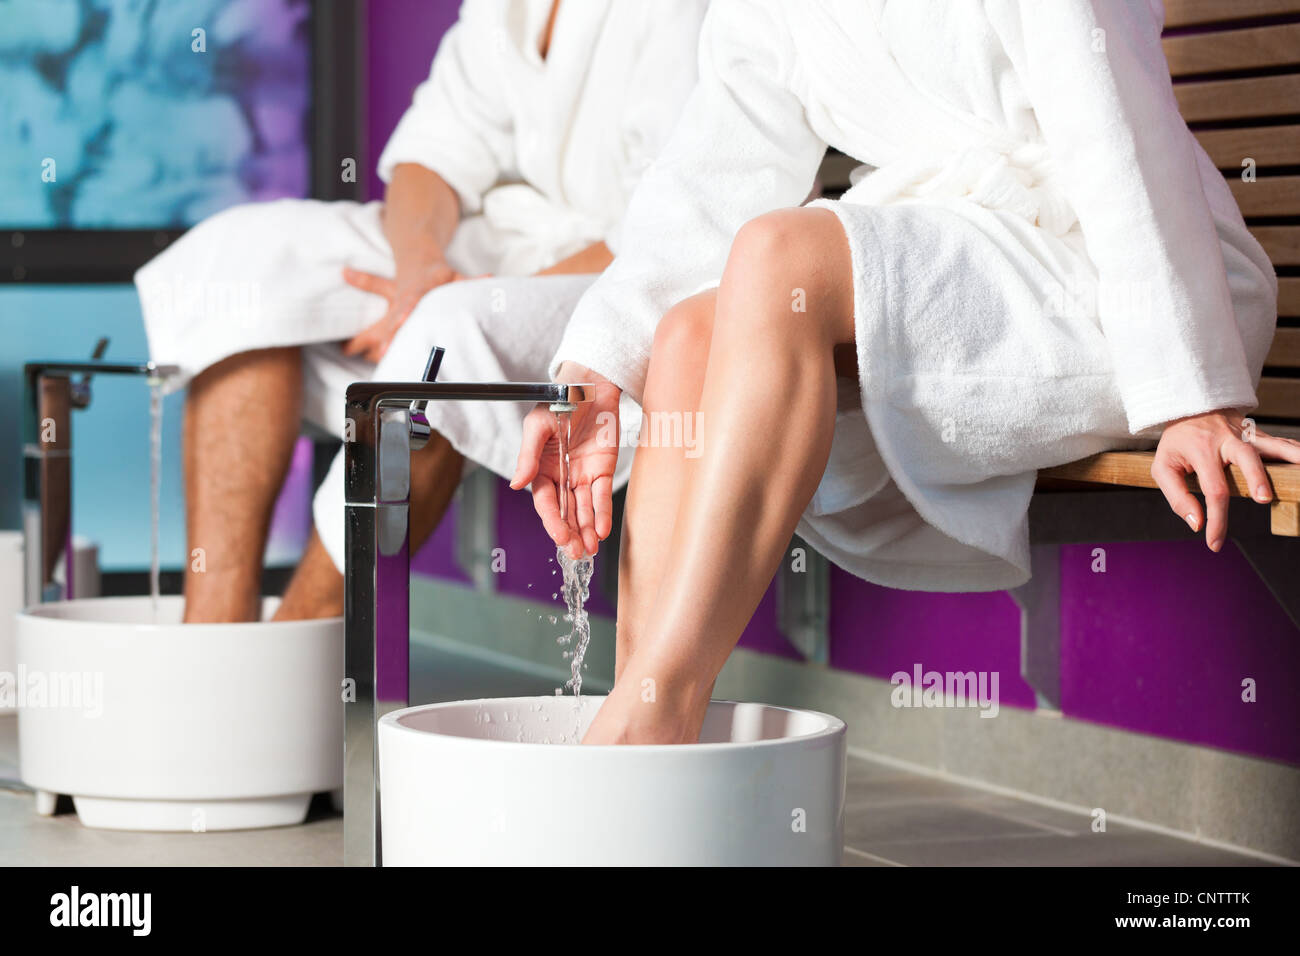 Couple - man and woman - having hydrotherapy water footbath in spa setting Stock Photo